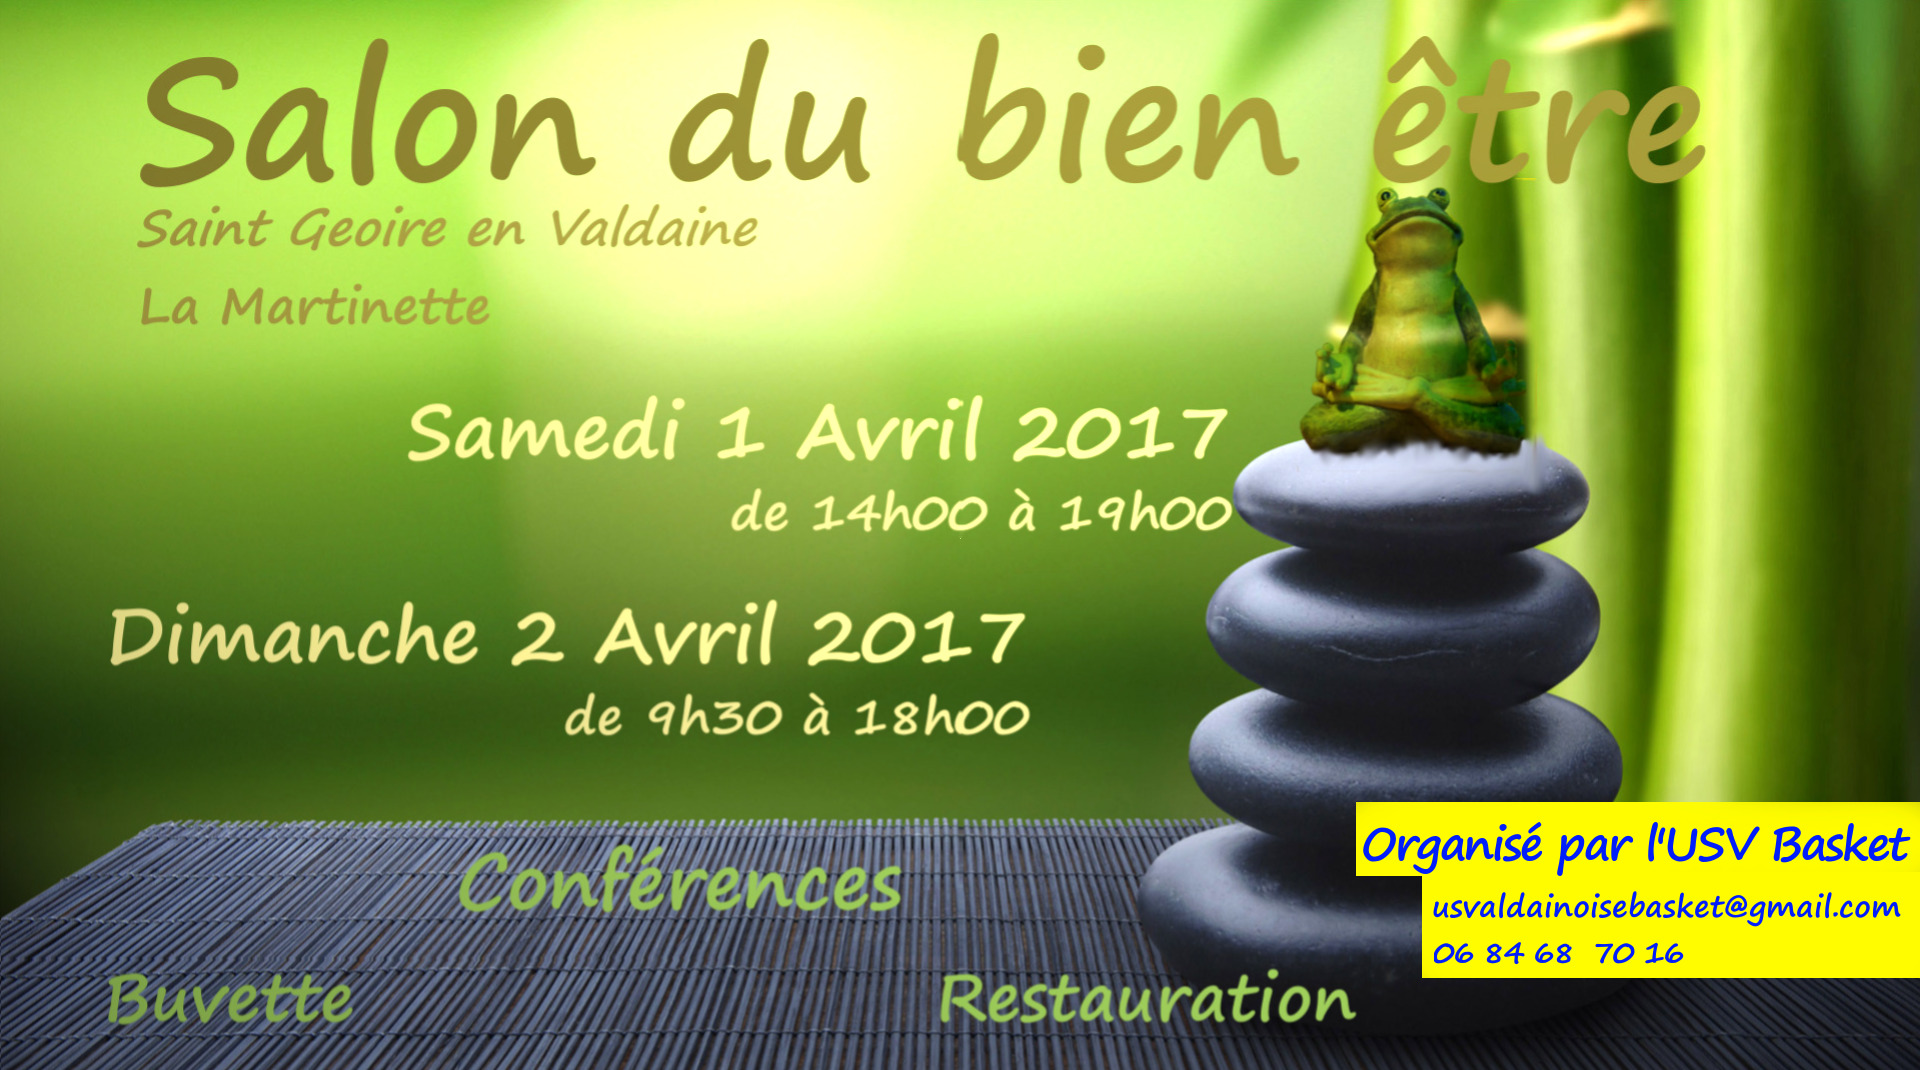 Salon du bien tre 2017 union sportive valdainoise basket for Salon du cannabis 2017